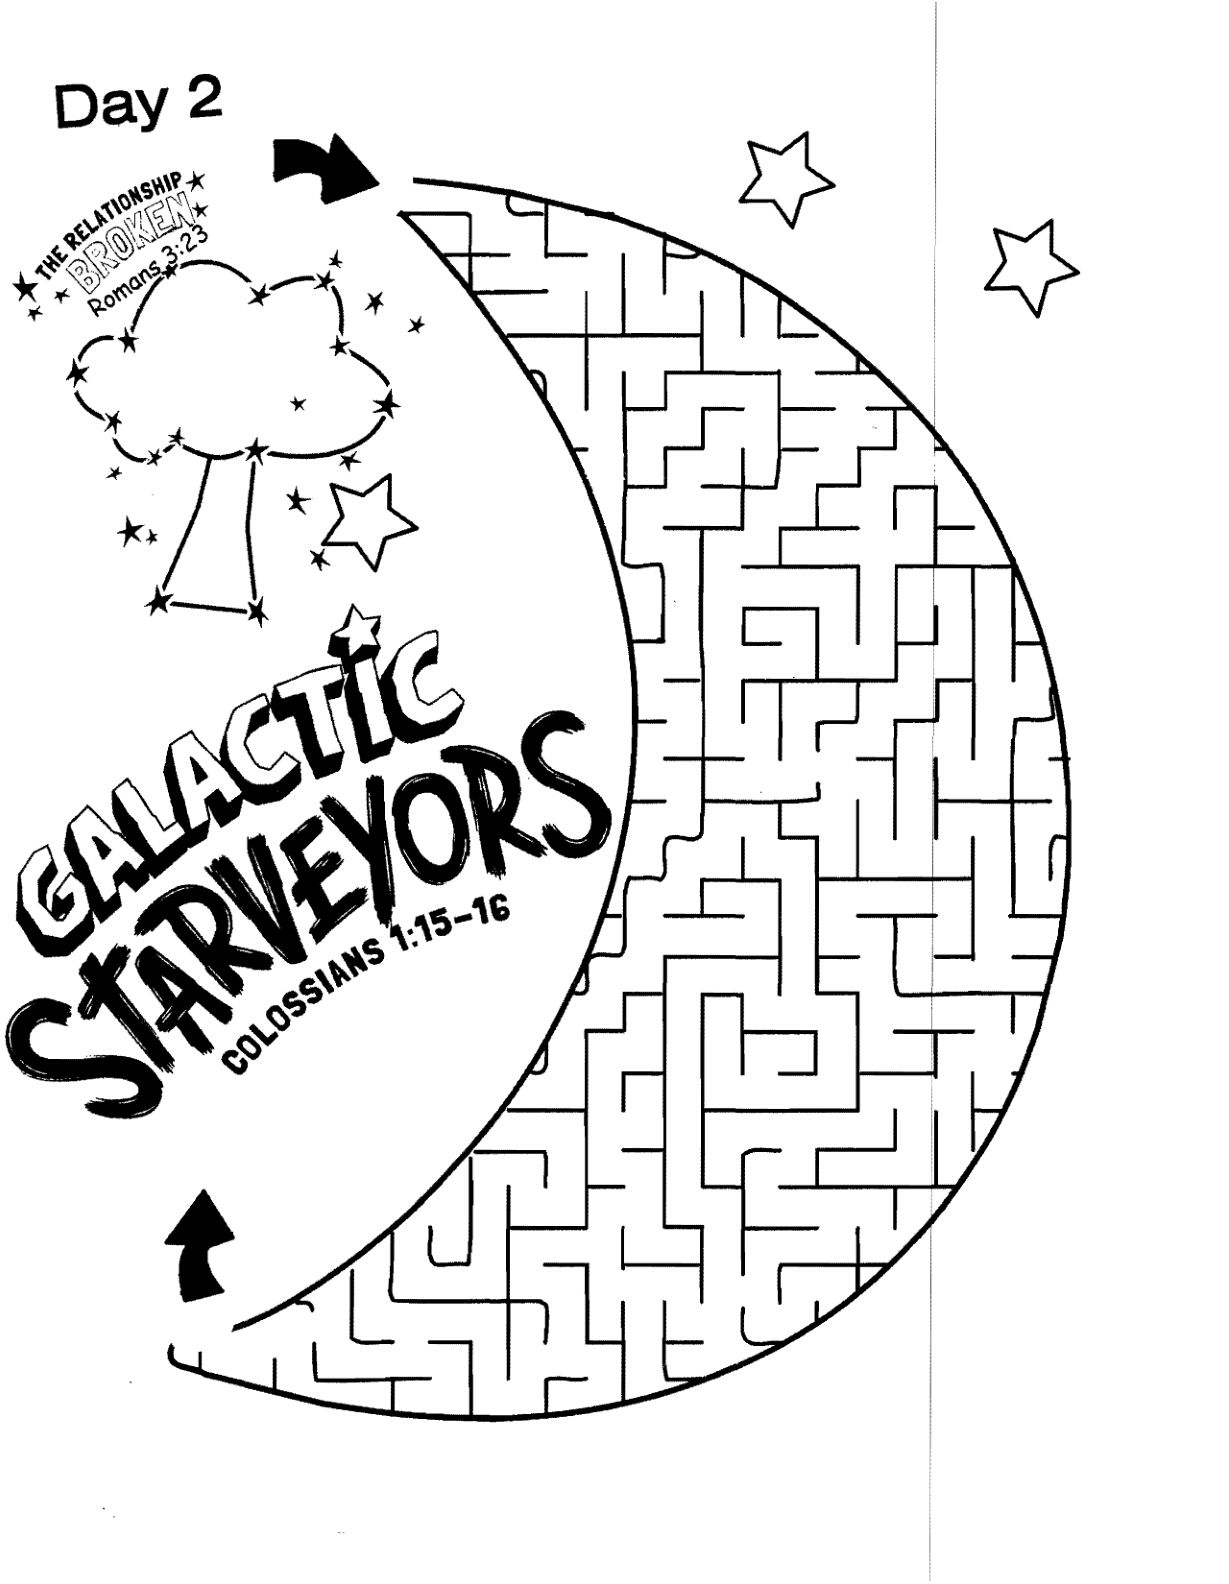 Galactic Starveyors Coloring Sheet VBS 2017- day 2